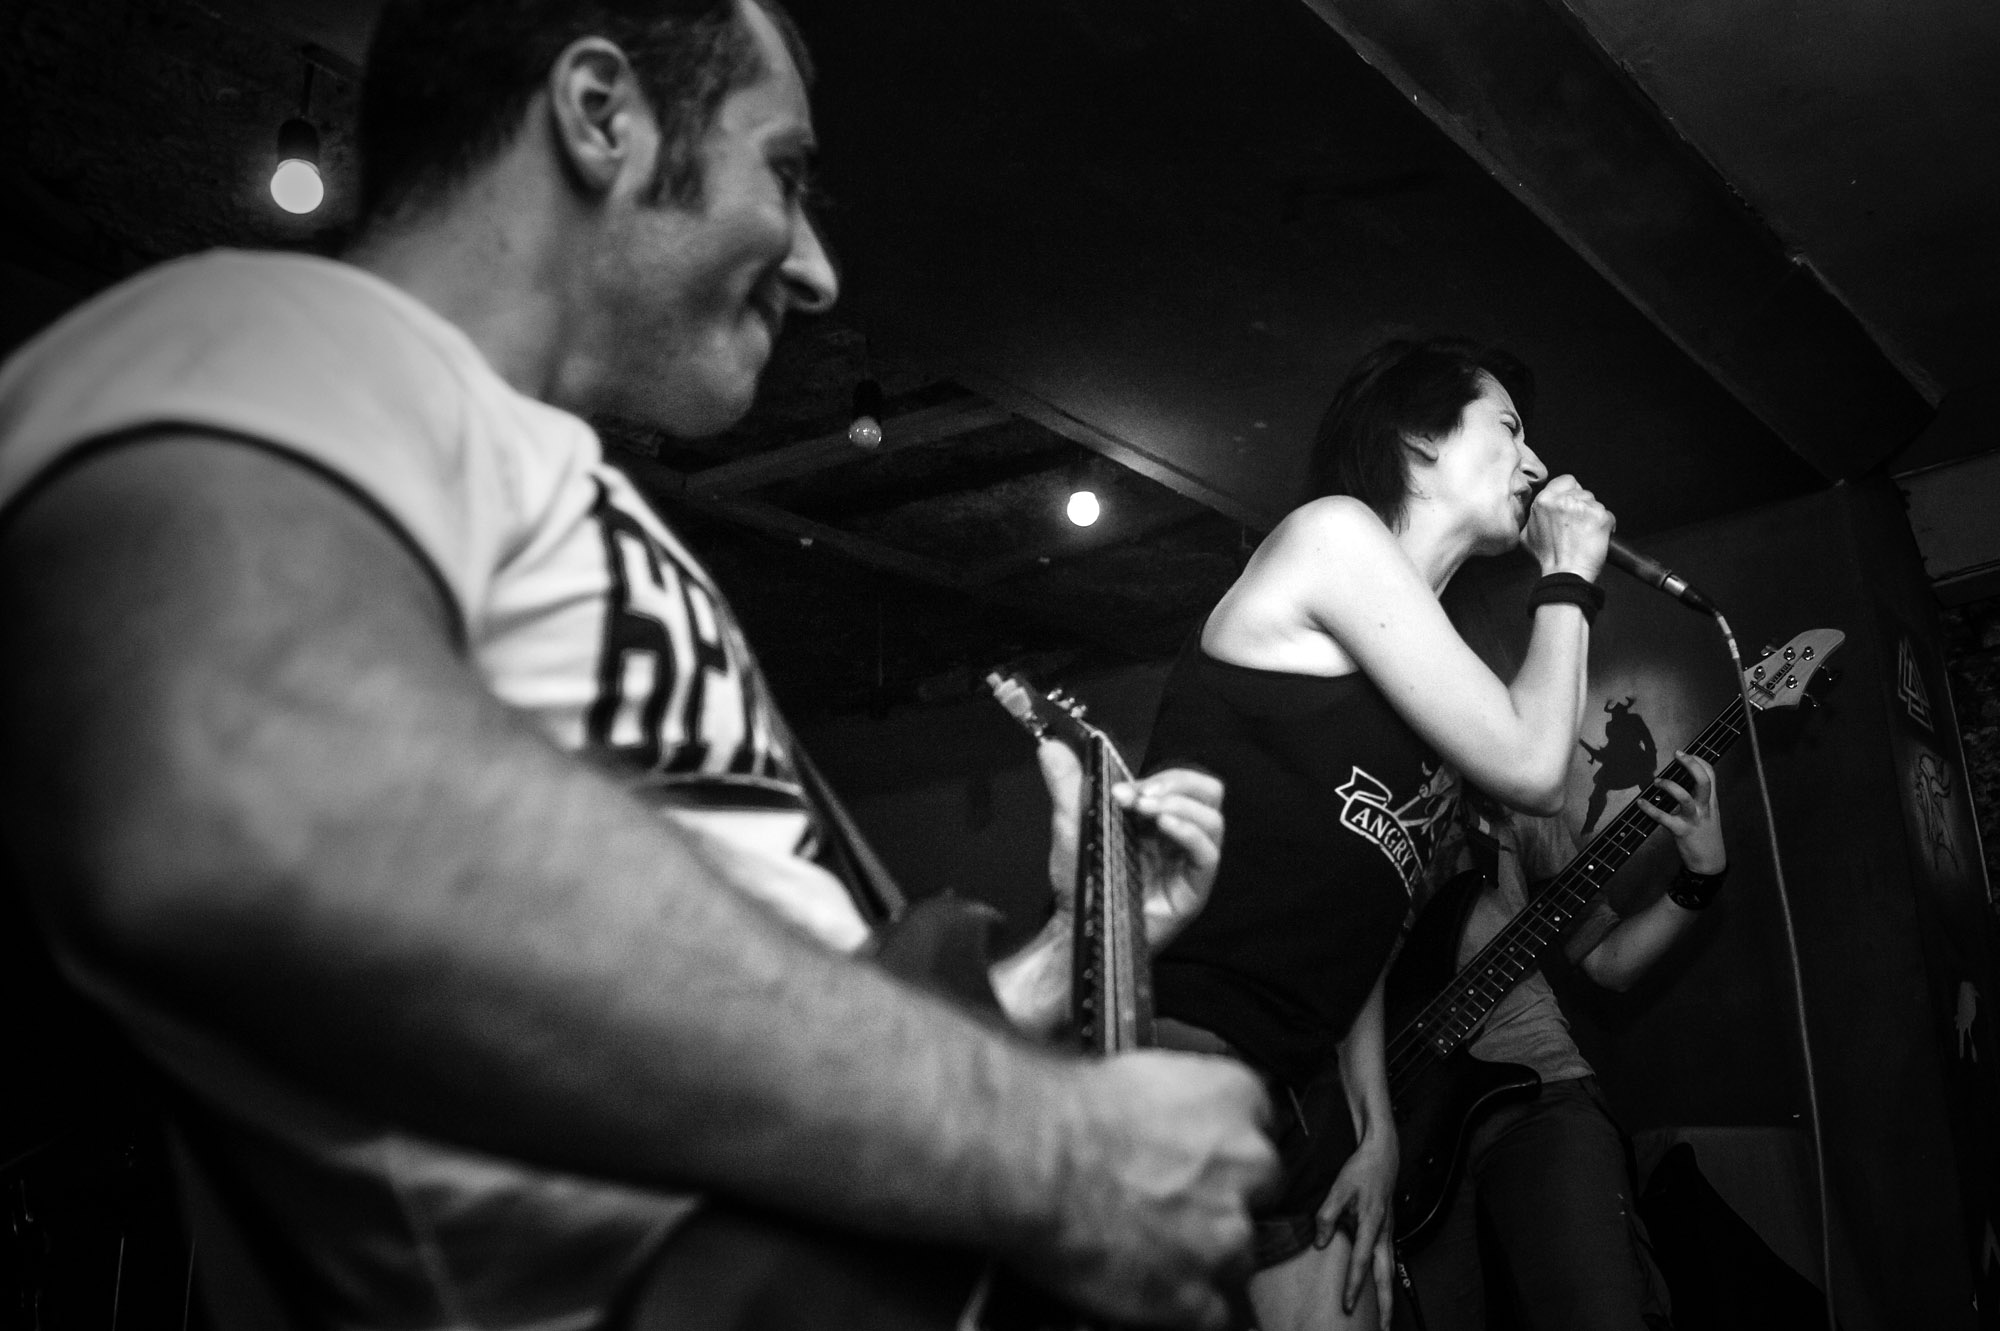 The Russian-Georgian punk band Catalina, formed last year, performs at the Valhalla Bar, also located in Tbilisi's Old Town. It's lead singer, Maria Pronchenko says the band's songs are intended to encourage youth to think for themselves.